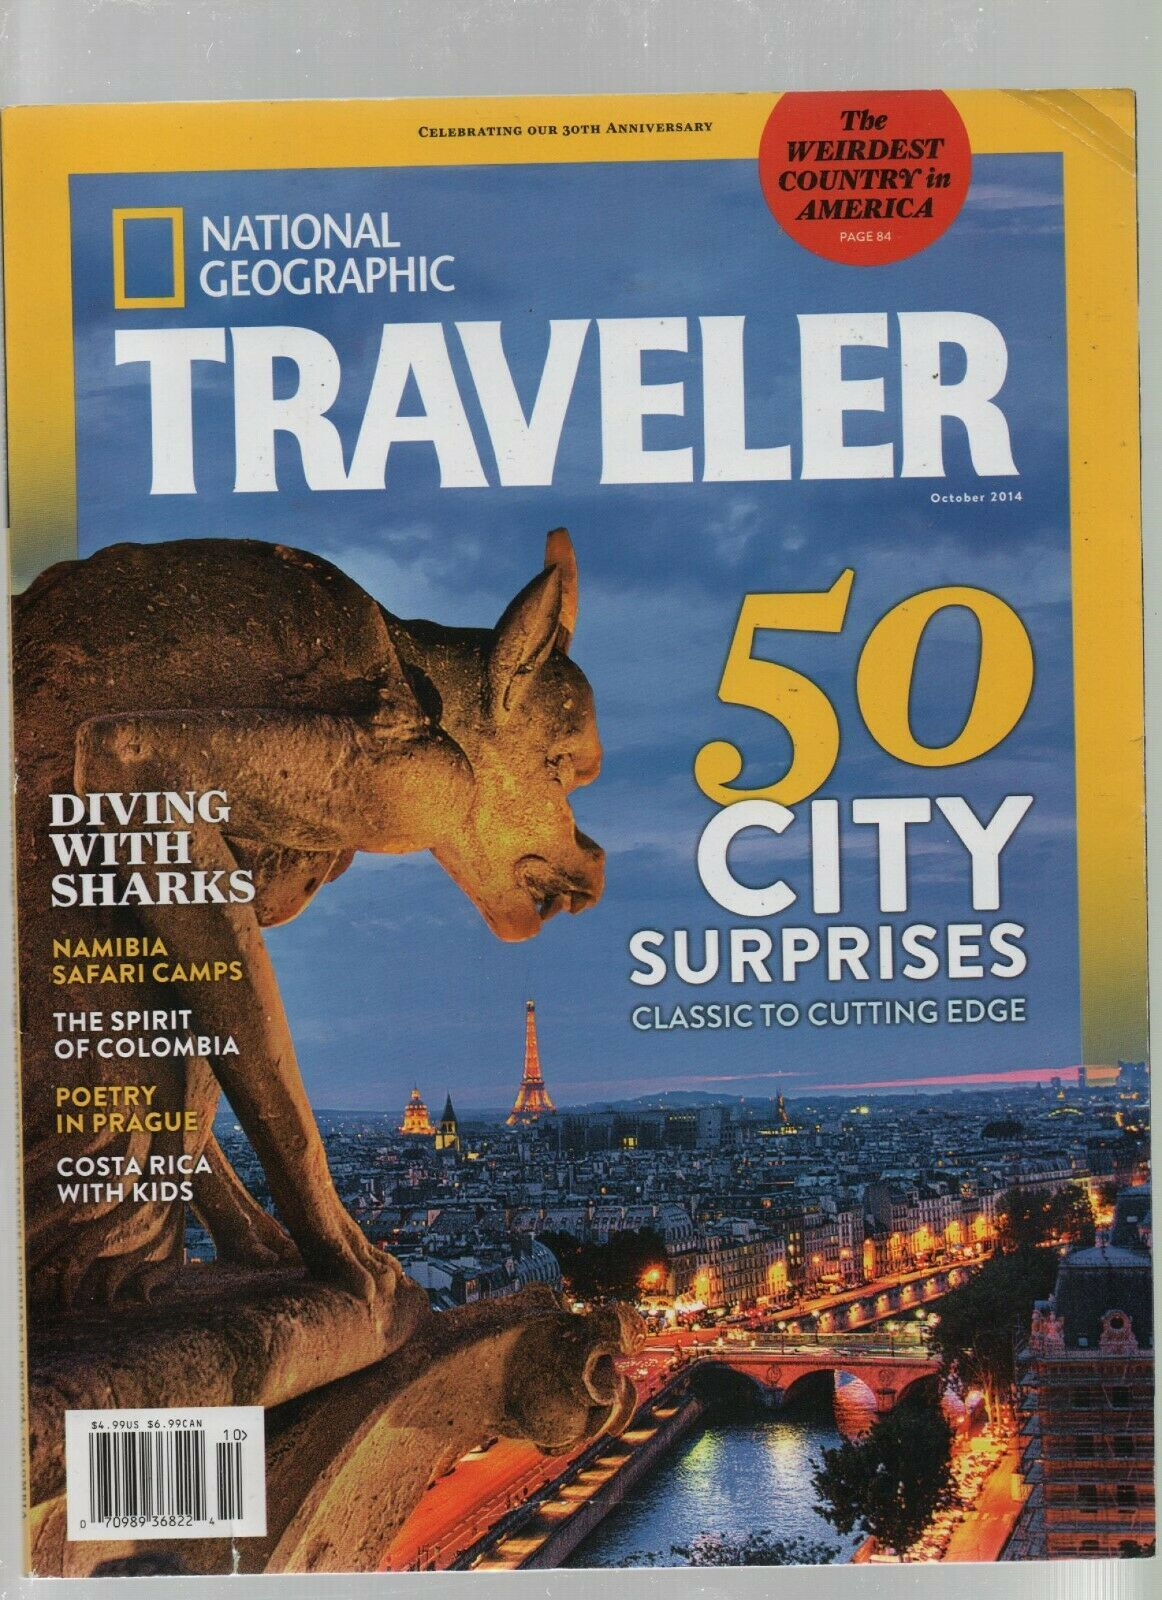 National Geographic Traveler - October 2014 - Sharks, Namibia, Colombia, Prague.